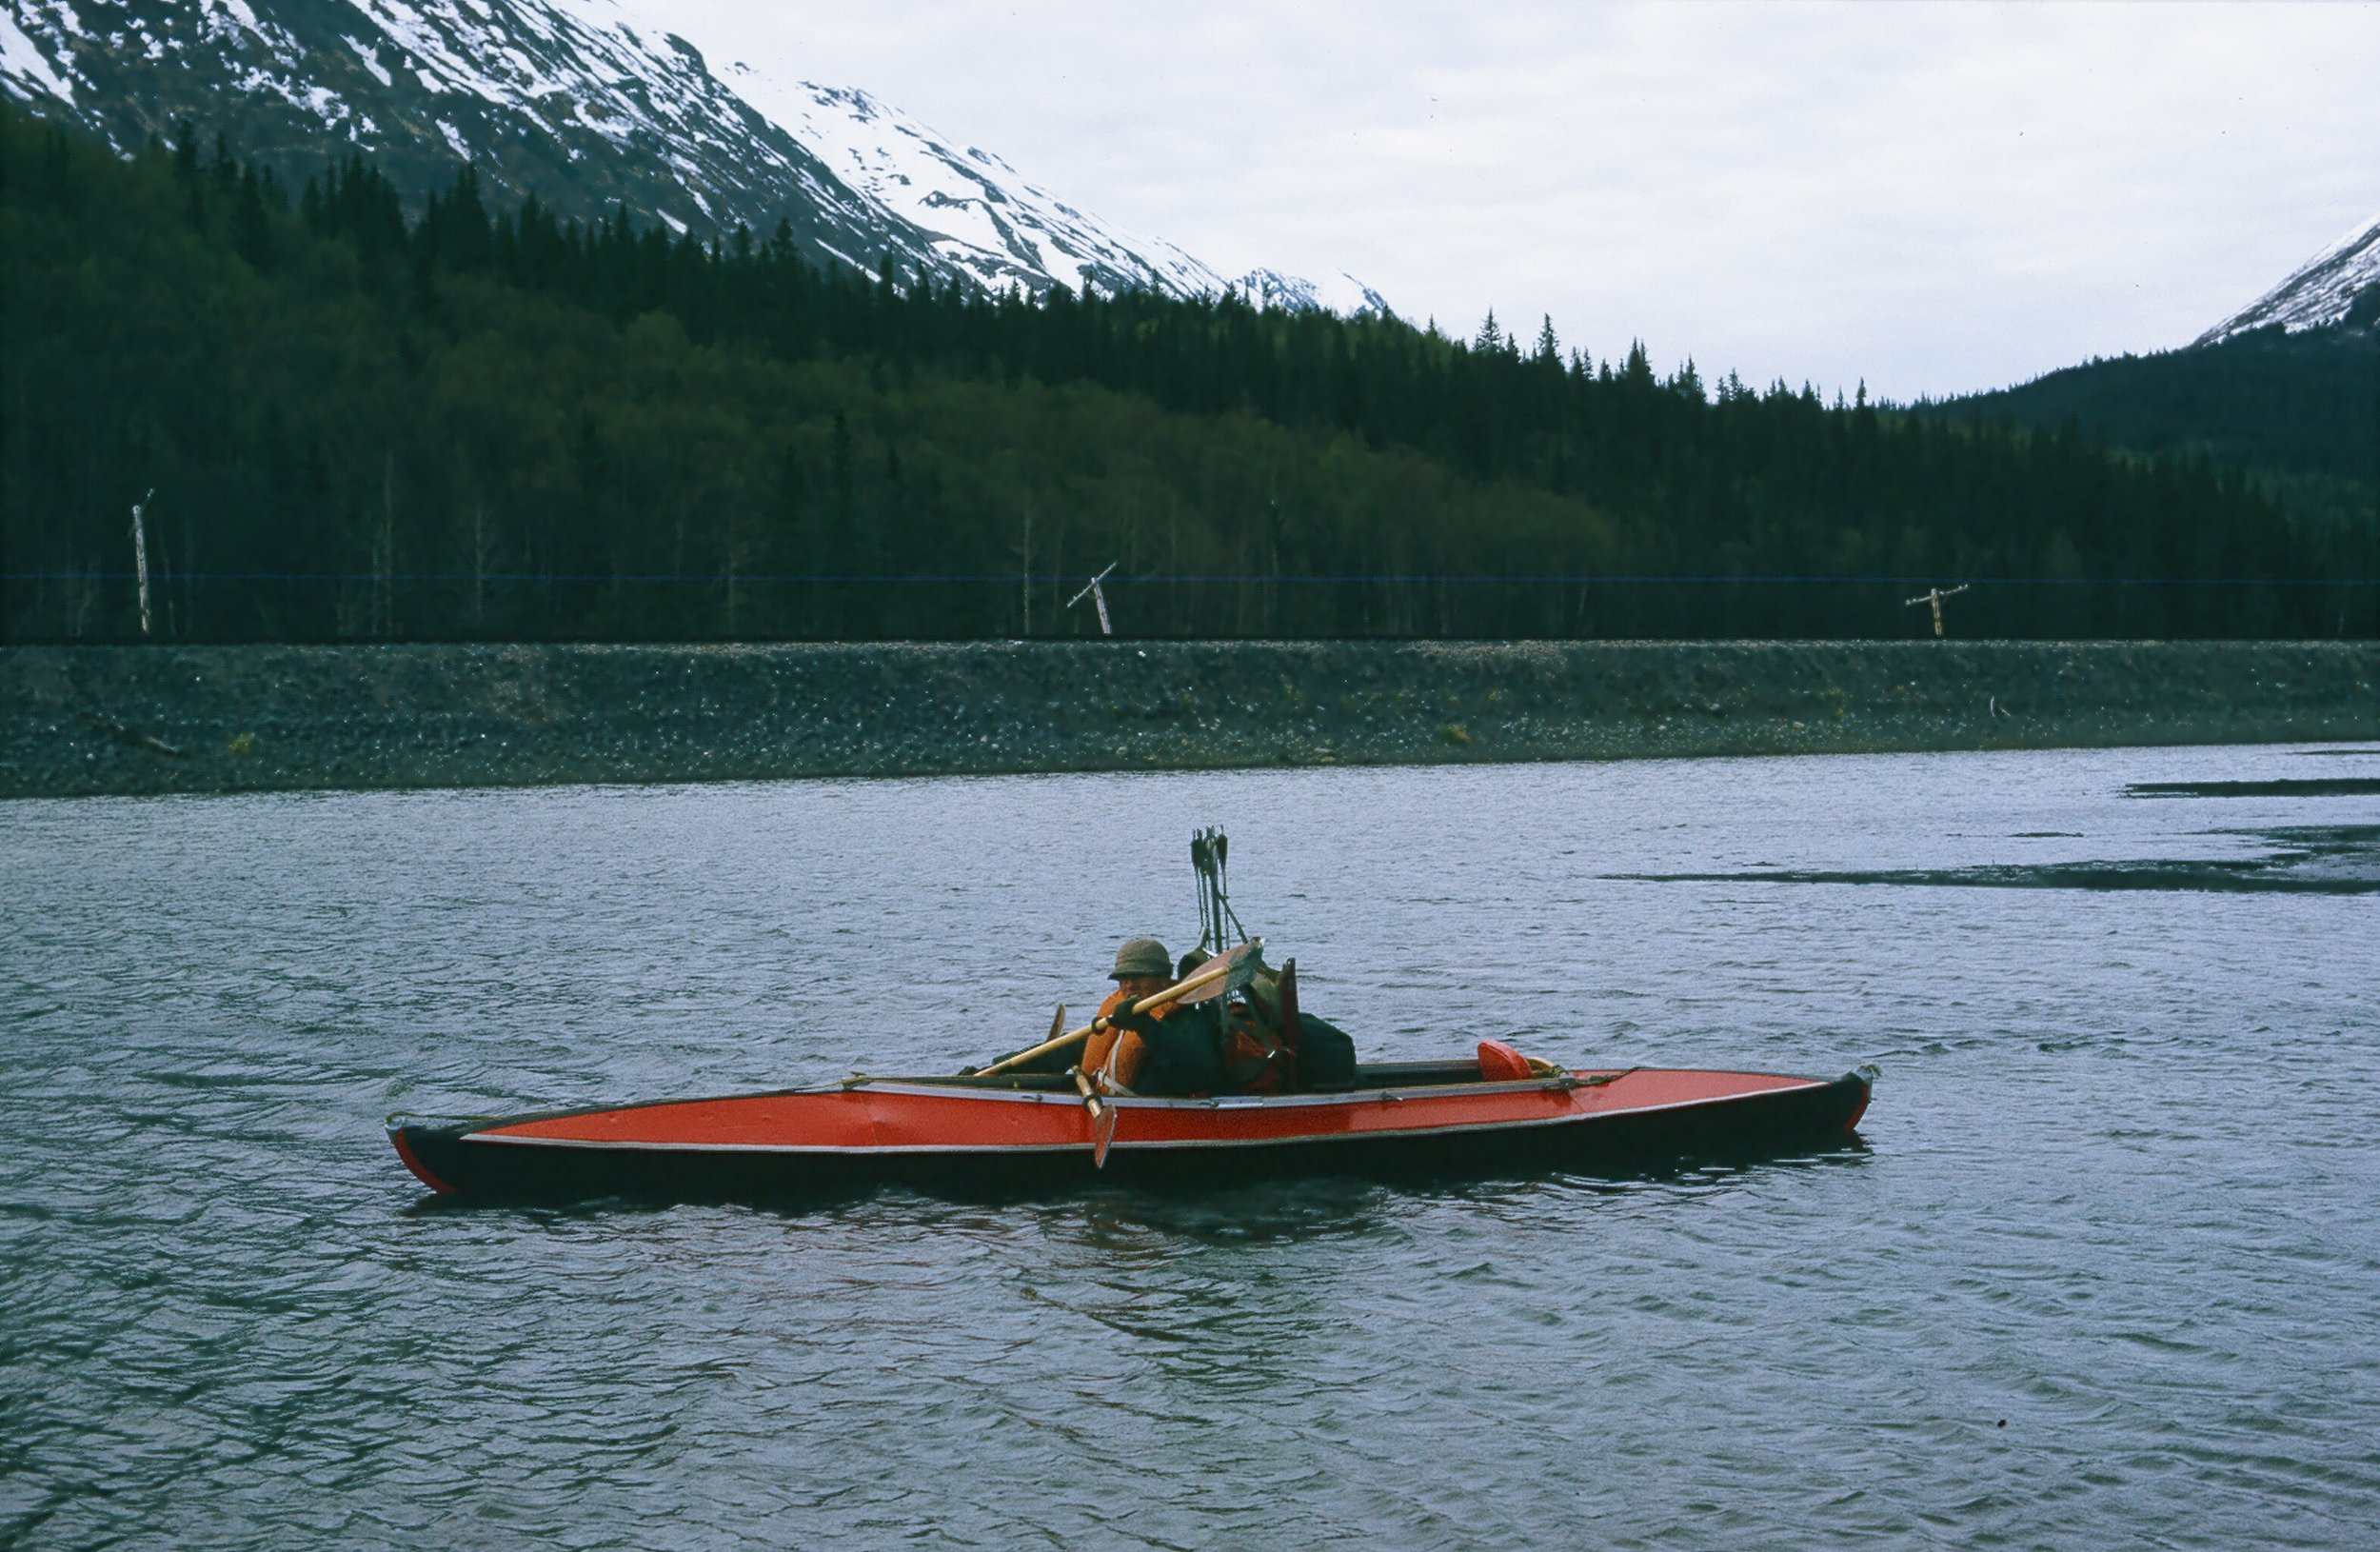 The Folboat that we used to cross the lake. This time it was on a spring black bear hunt.